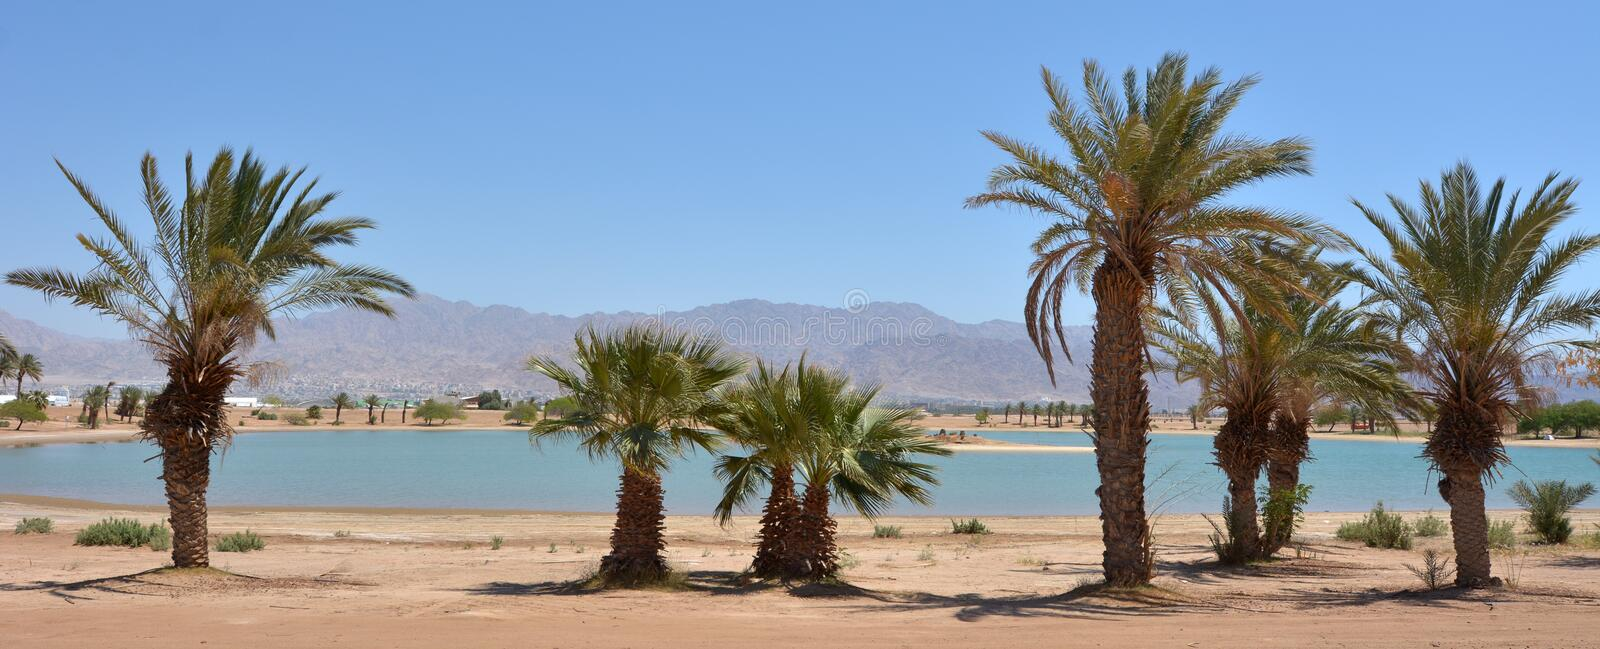 Lagoon with palm trees in Eilat, Israel. Cityscape of a lagoon with palm trees in Eilat, Israel stock image